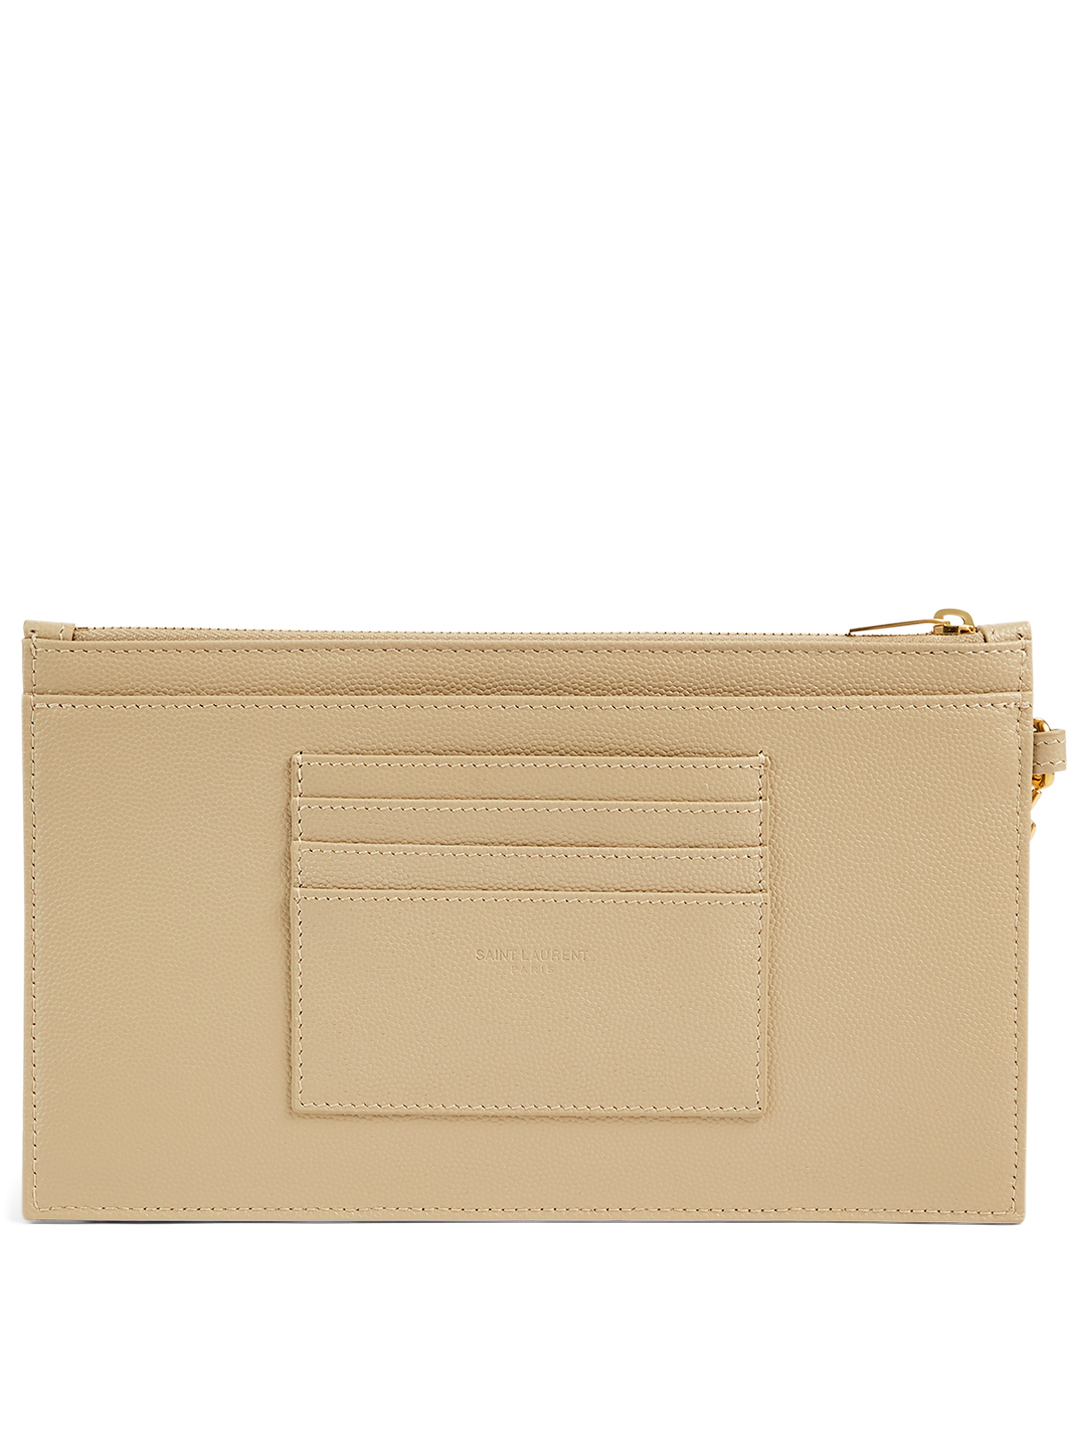 SAINT LAURENT Large YSL Monogram Leather Clutch Bag Women's Grey